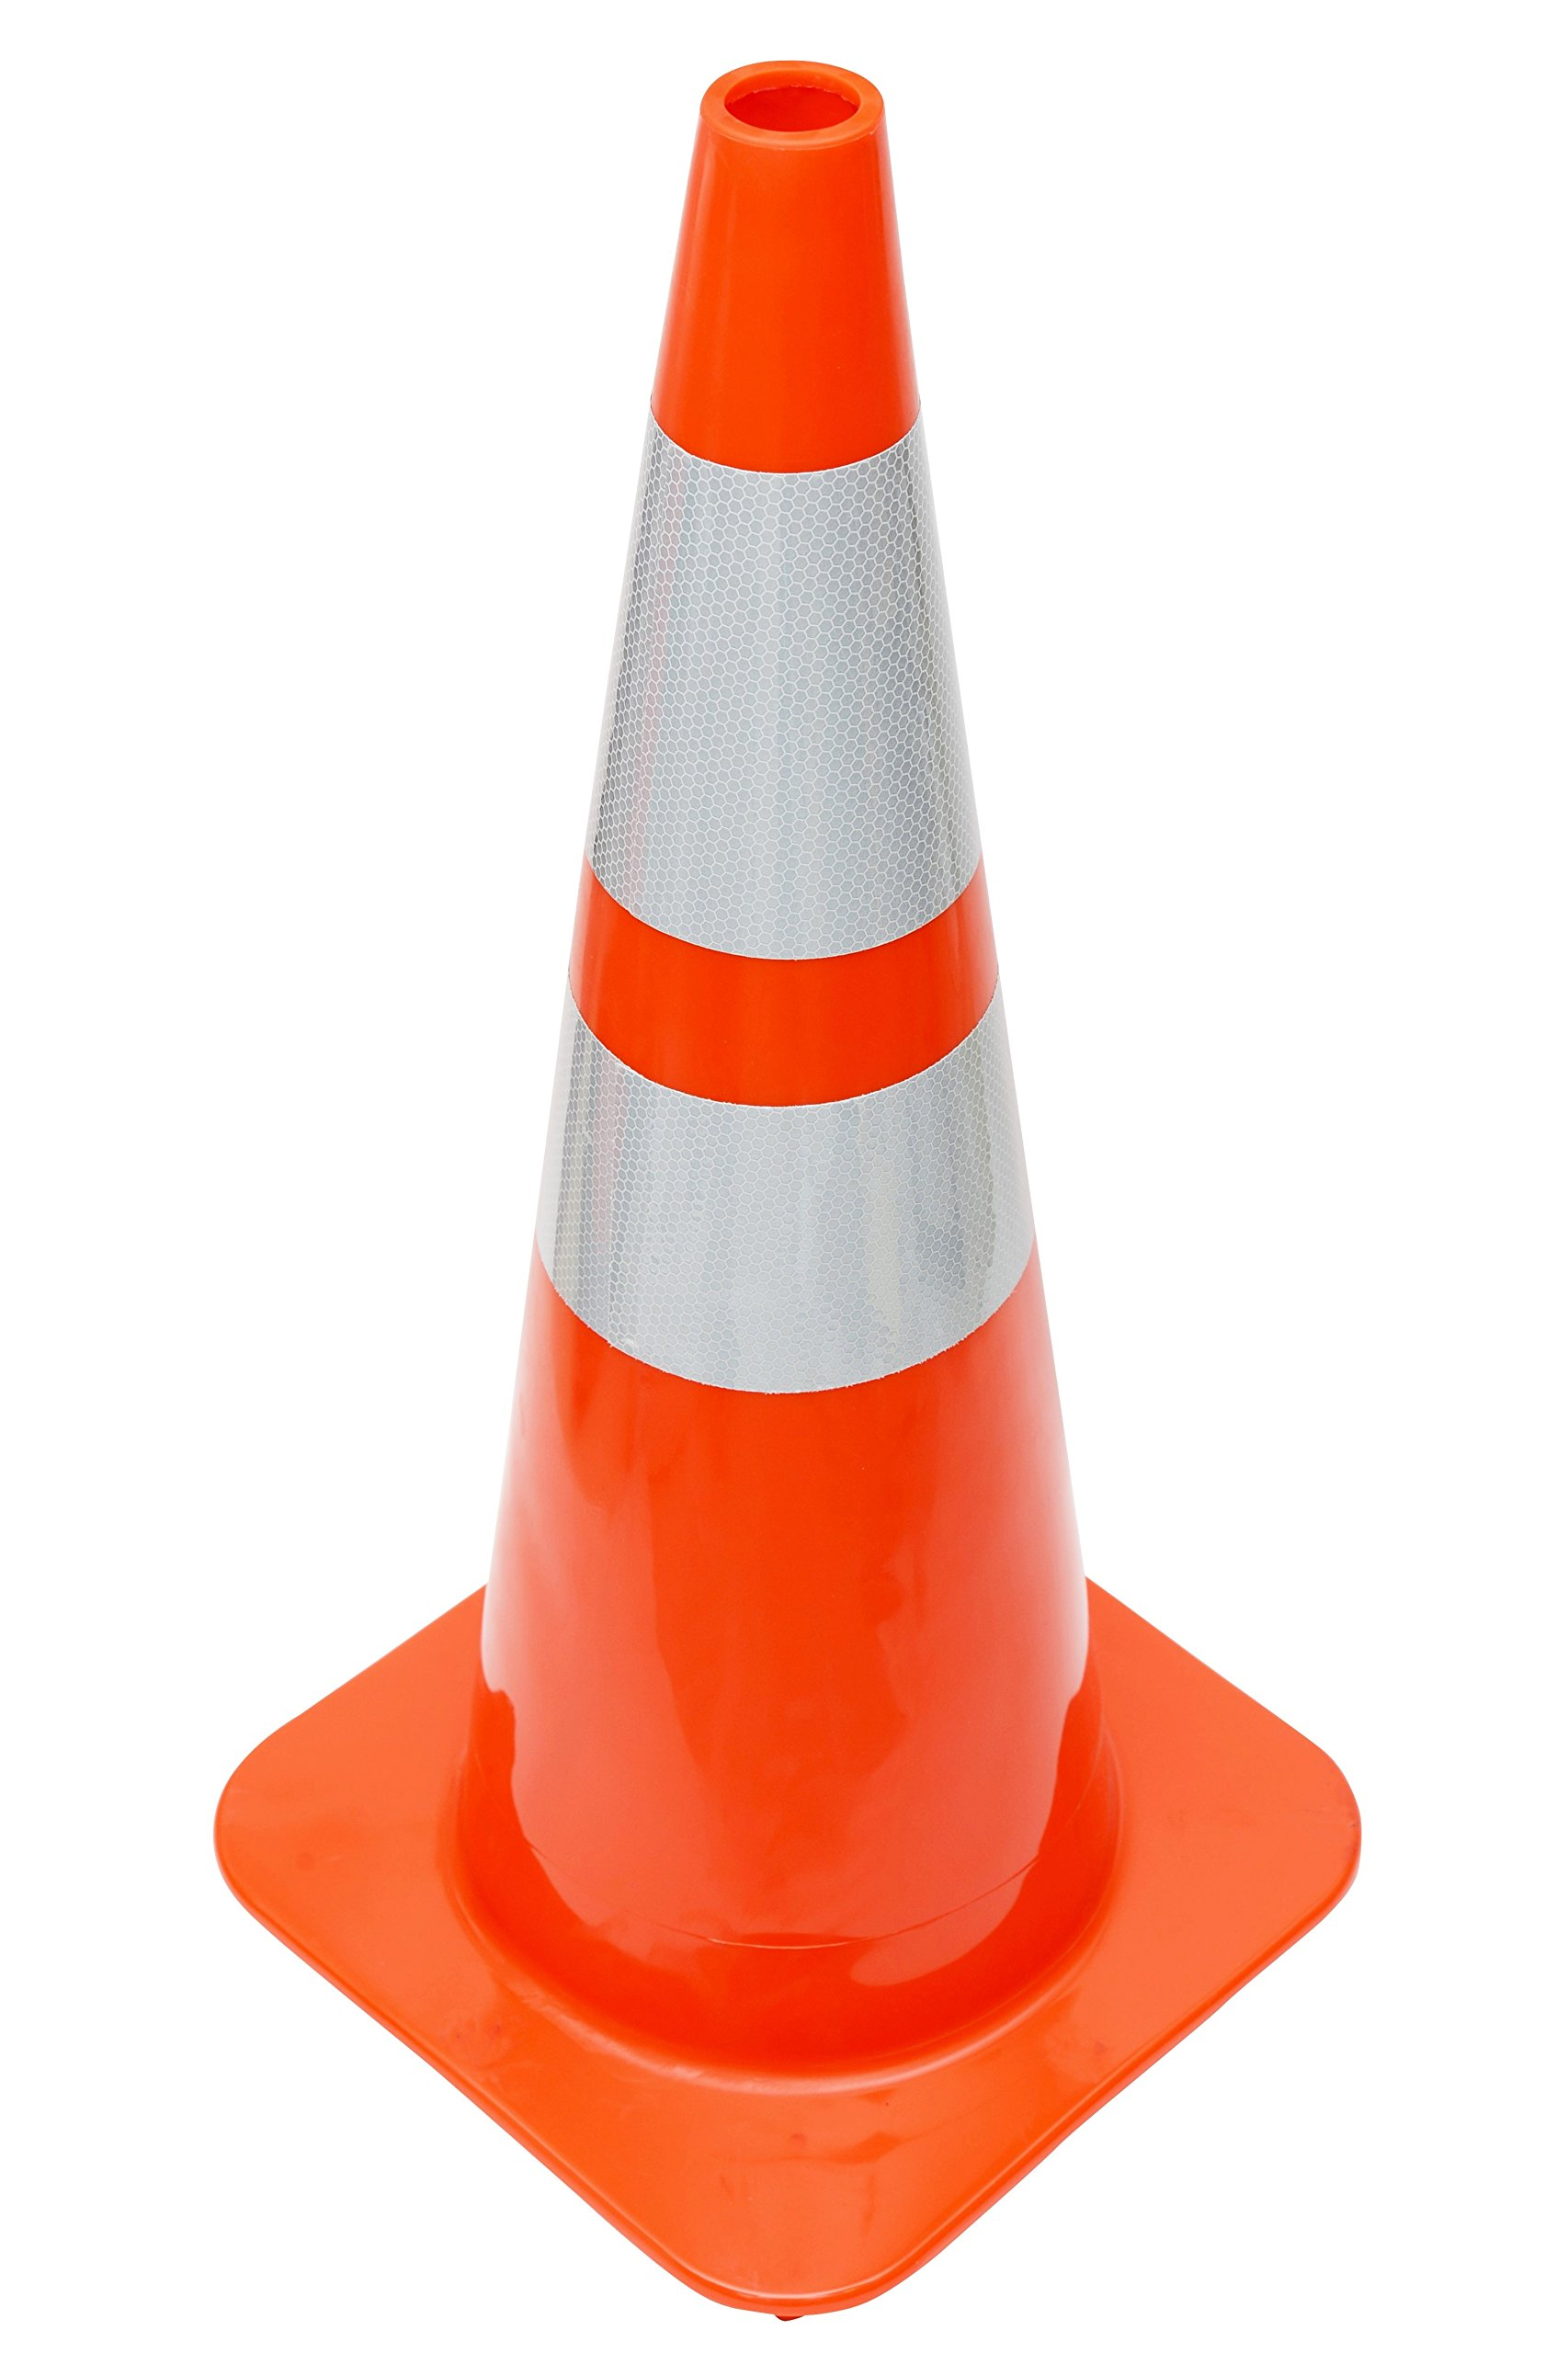 (4 Cones) CJ Safety 28'' Orange PVC Traffic Safety Cones with 6'' & 4'' Reflective Collars (Set of 4)